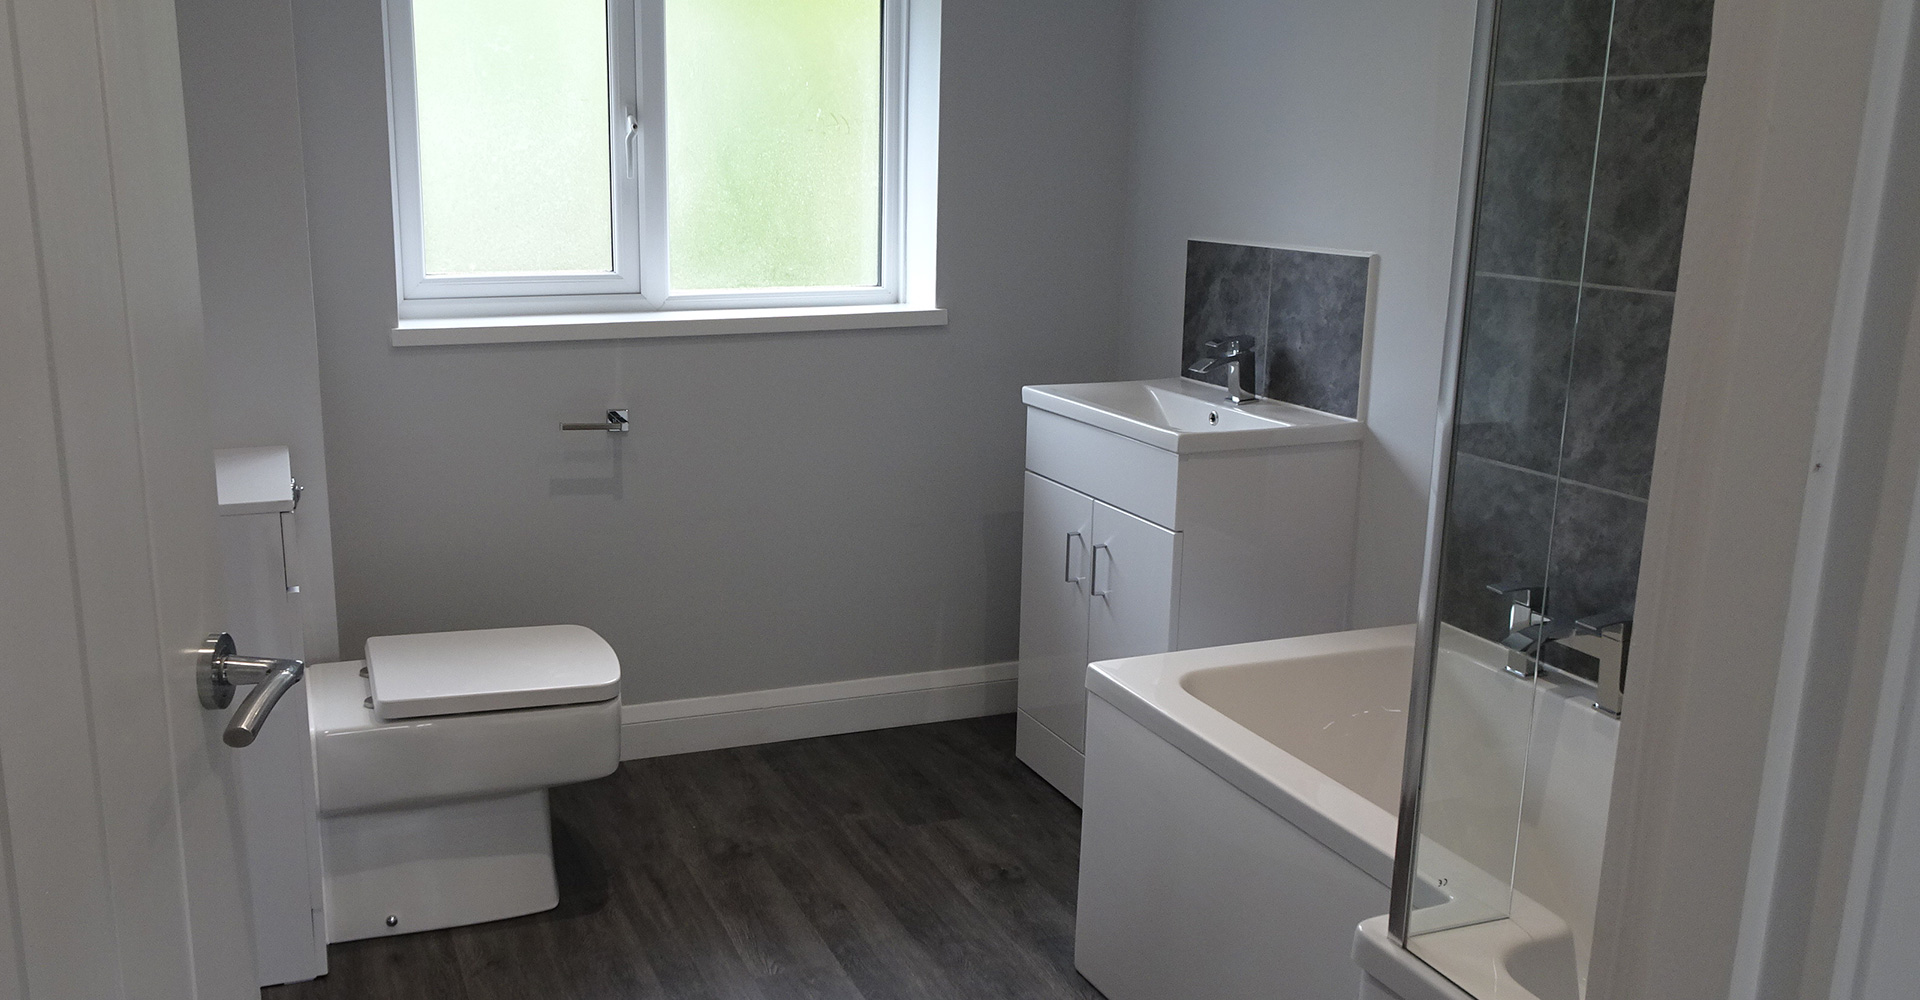 Morris Parker bathroom refurbishment